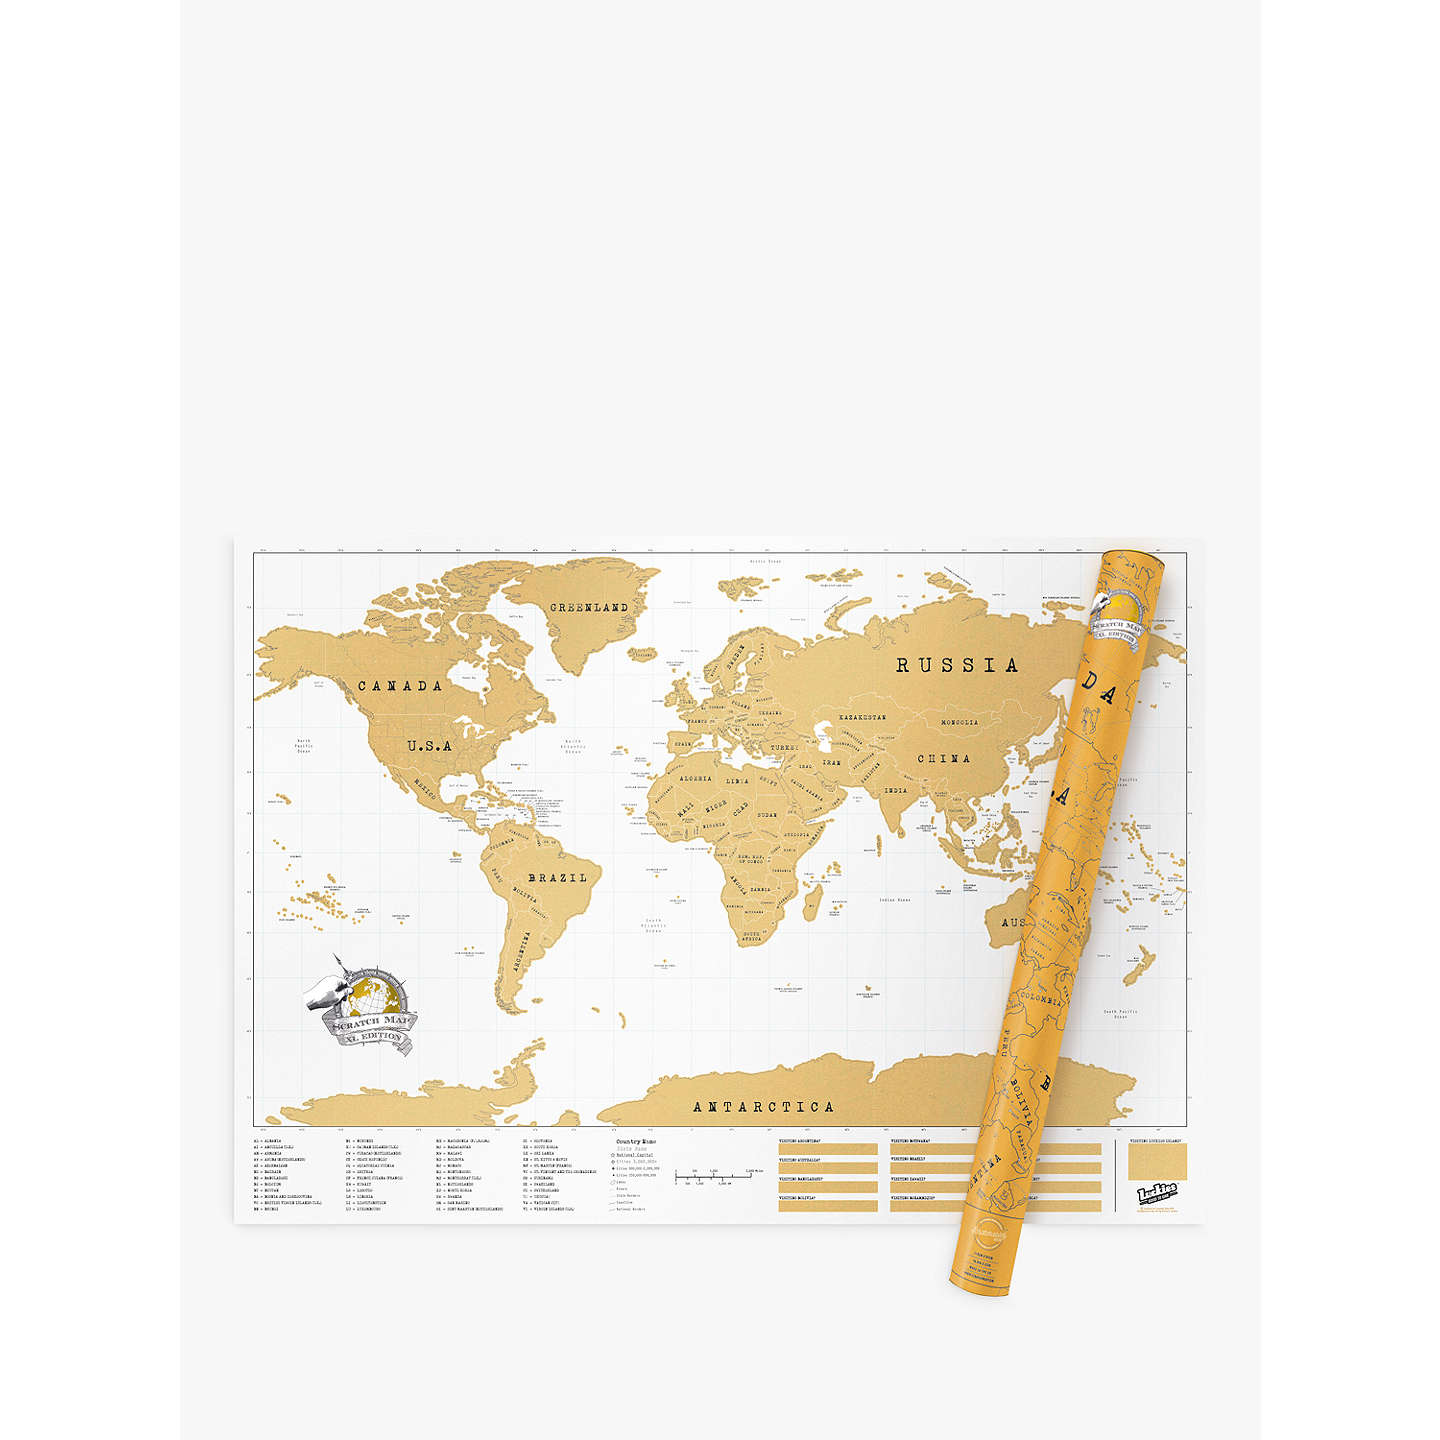 Luckies scratch map xl edition at john lewis buyluckies scratch map xl edition online at johnlewis gumiabroncs Choice Image